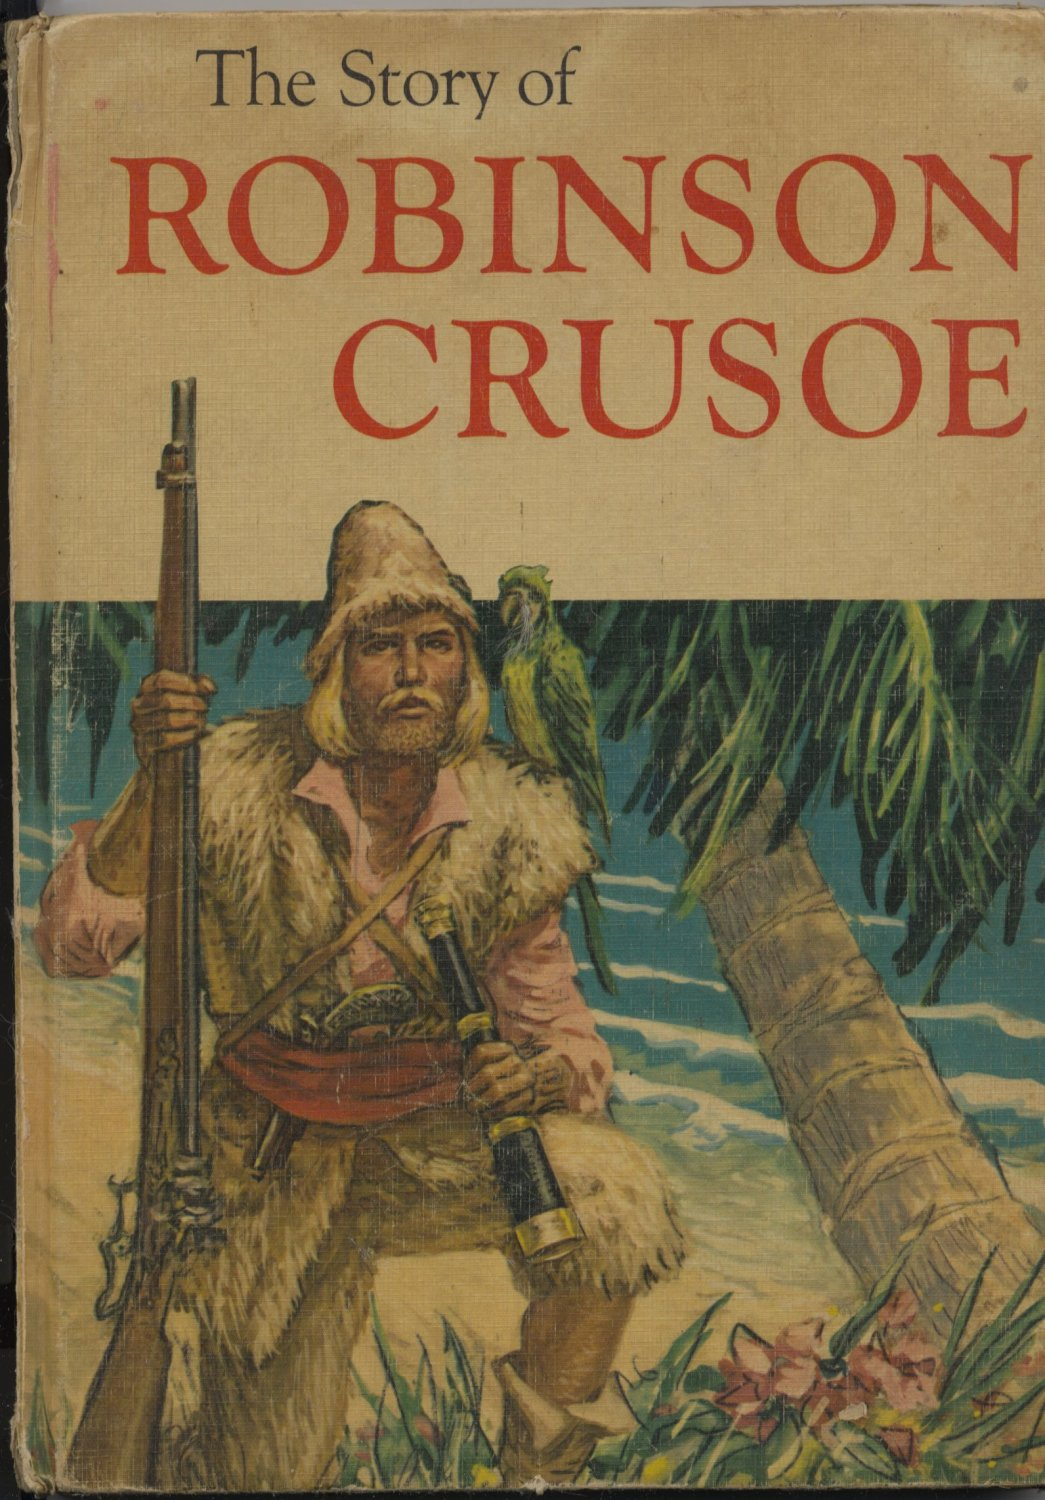 an analysis of the story of robinson crusoe An analysis of the spirit of innovation and independence in robinson crusoe name: hanyao(韩瑶 韩瑶) 韩瑶 major : english education (英语.